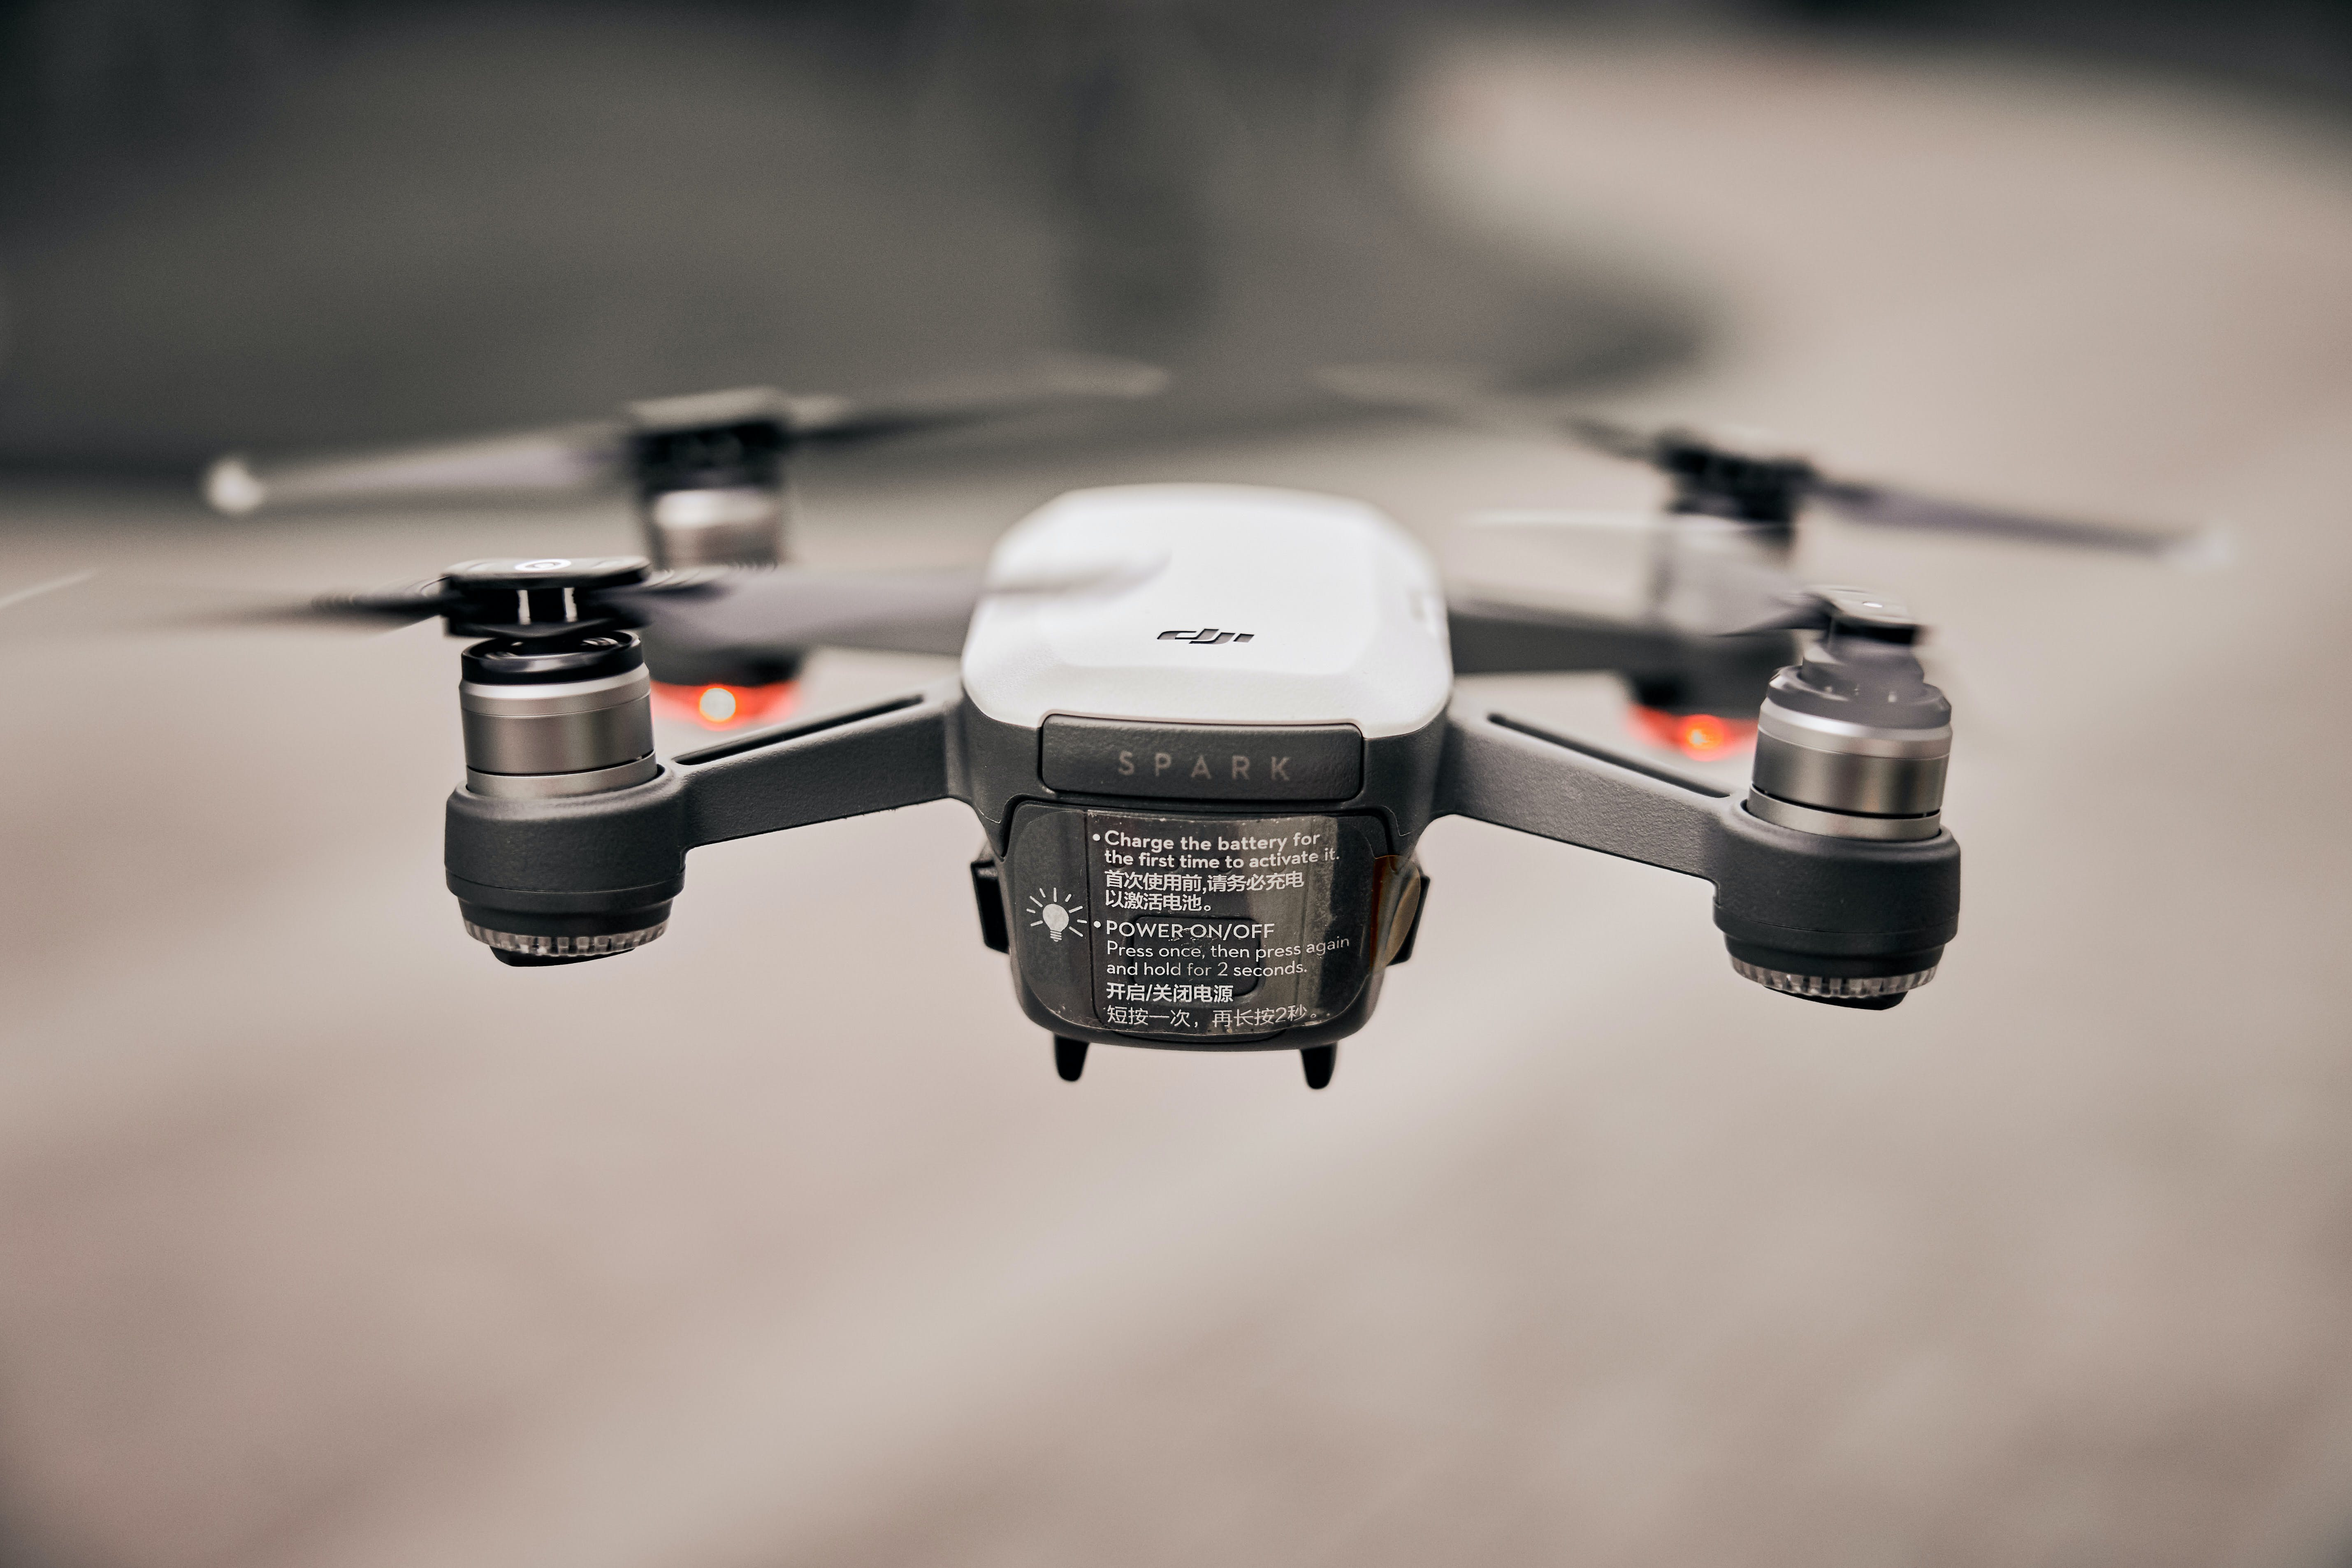 Flying White Drone Tilt Shift Lens Photography